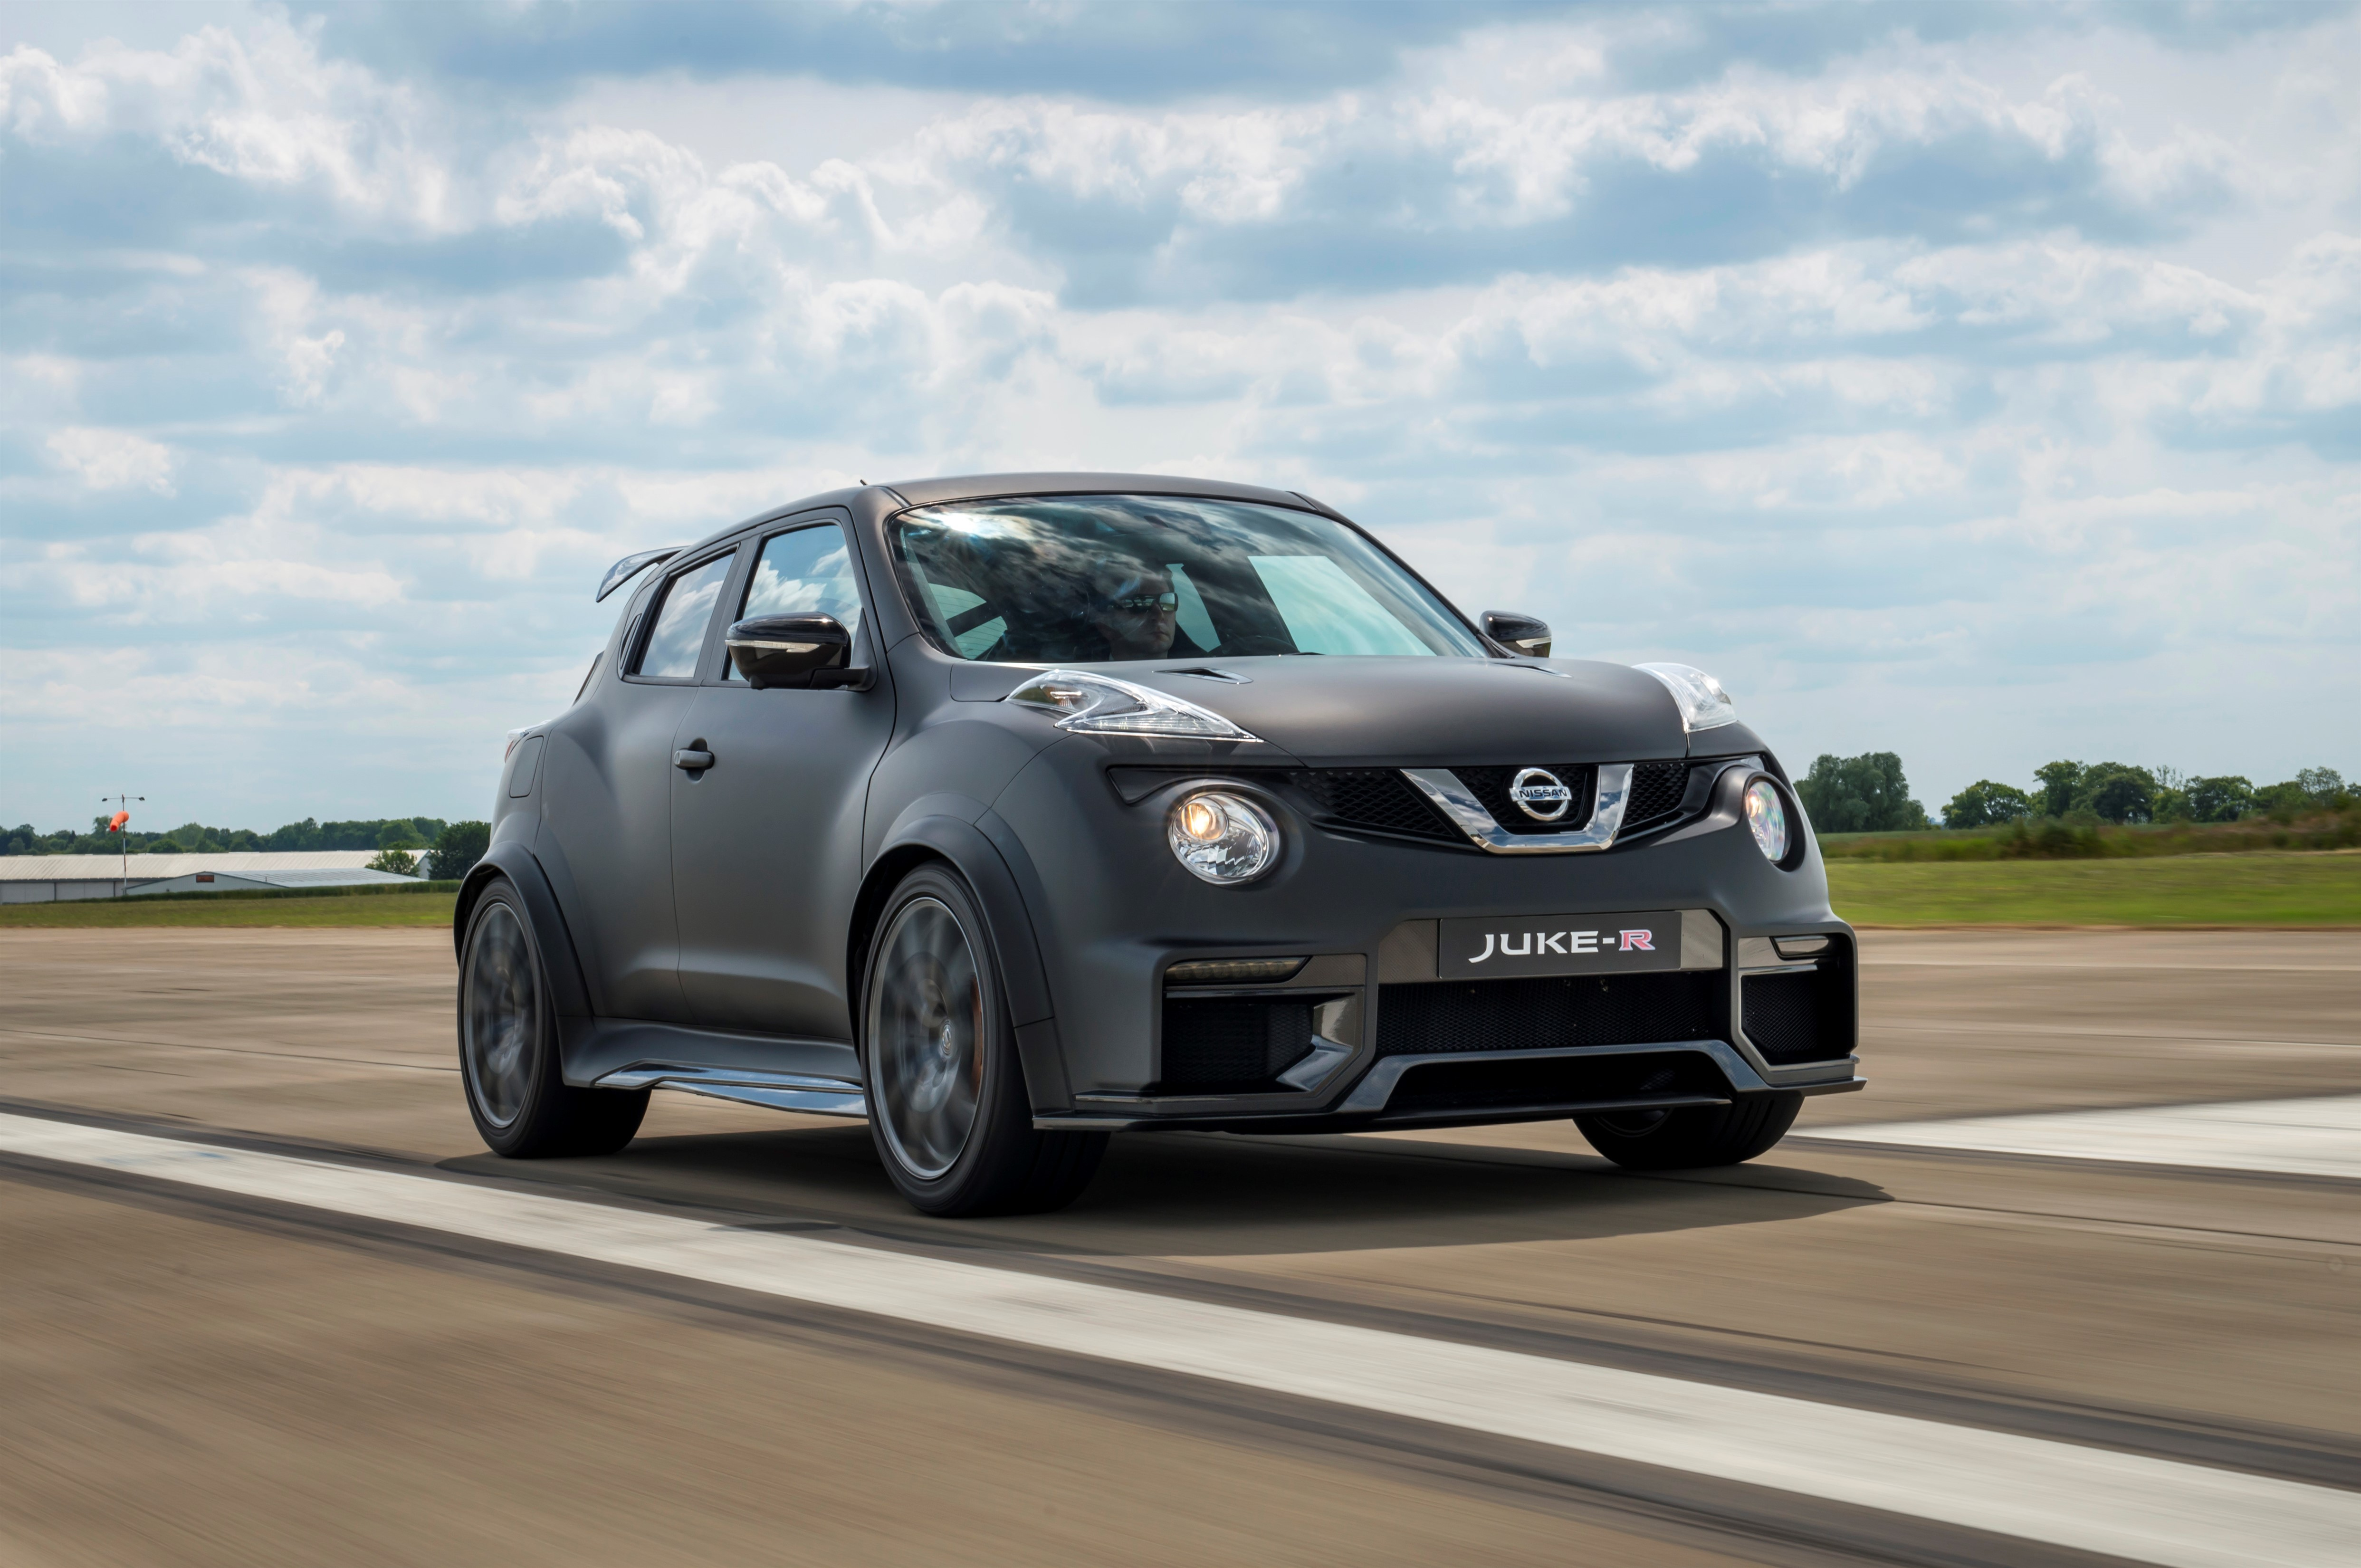 car express photo drives turbo auto first nissan juke review